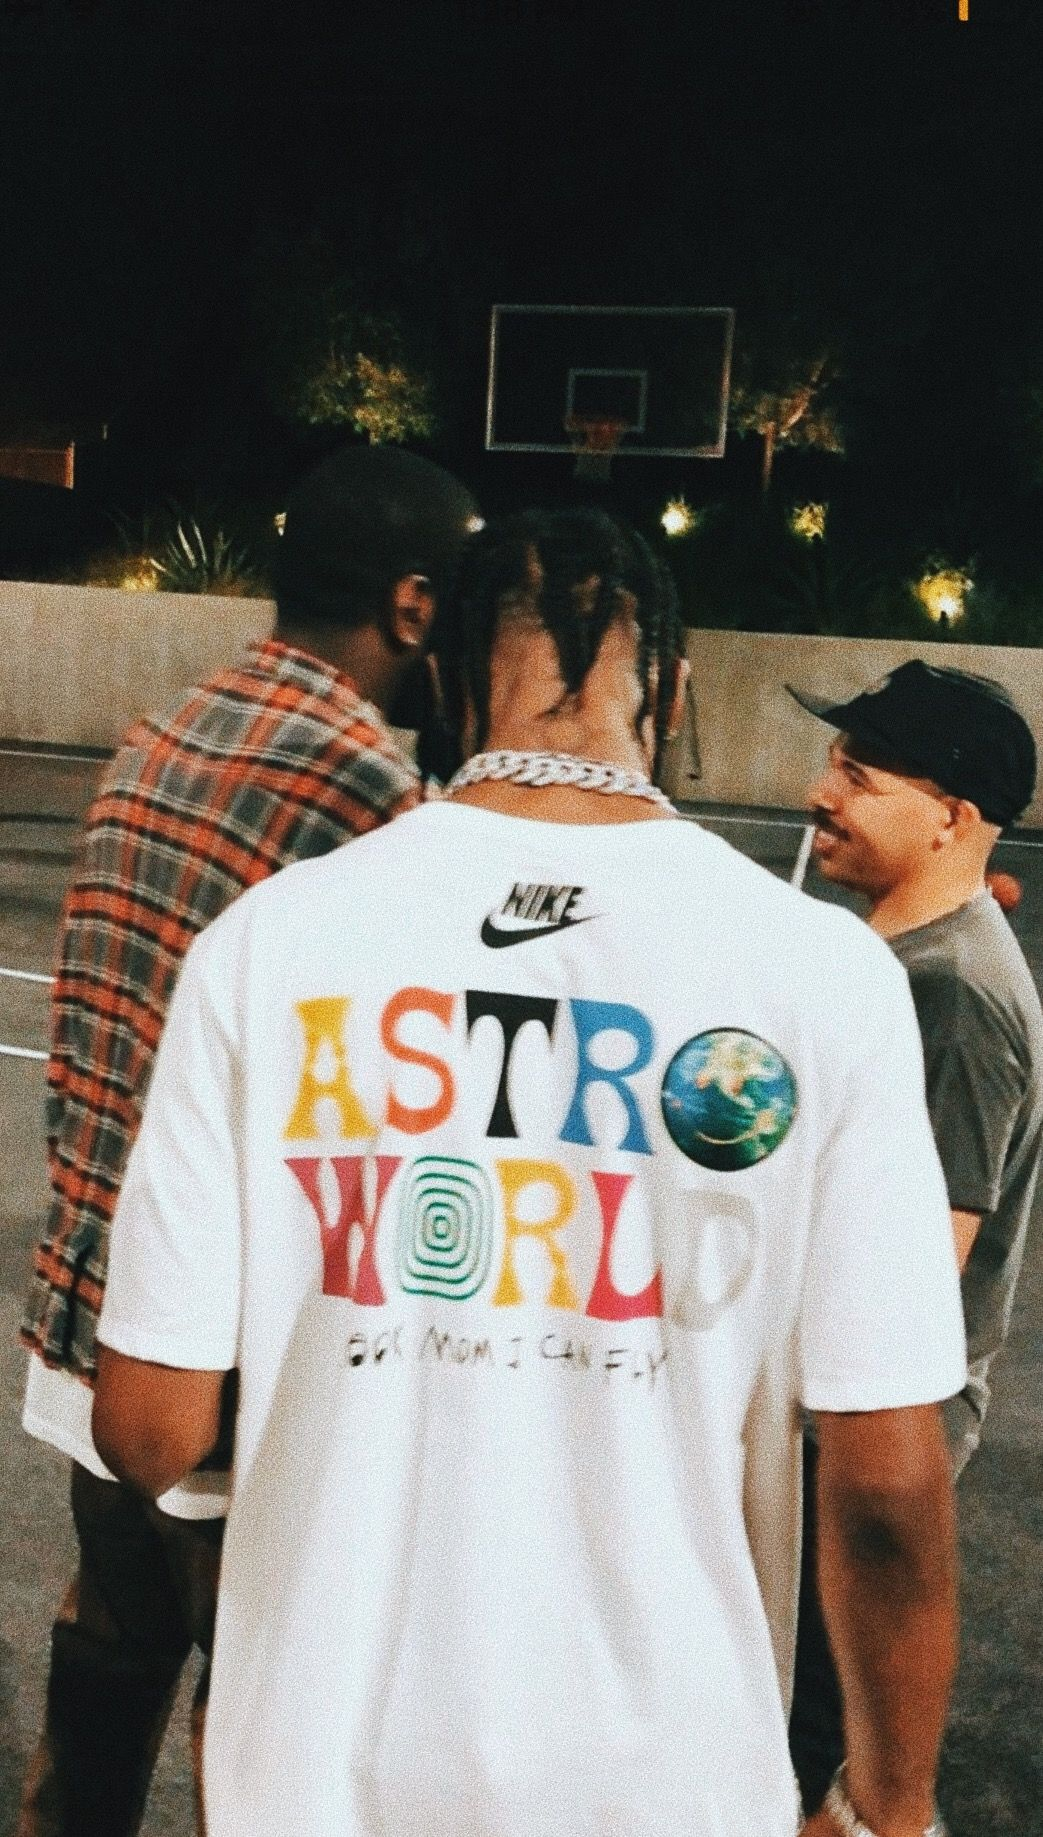 Pin by 𝕒𝕟𝕟𝕒𝕓𝕖𝕝𝕝𝕖 on music Travis scott wallpapers